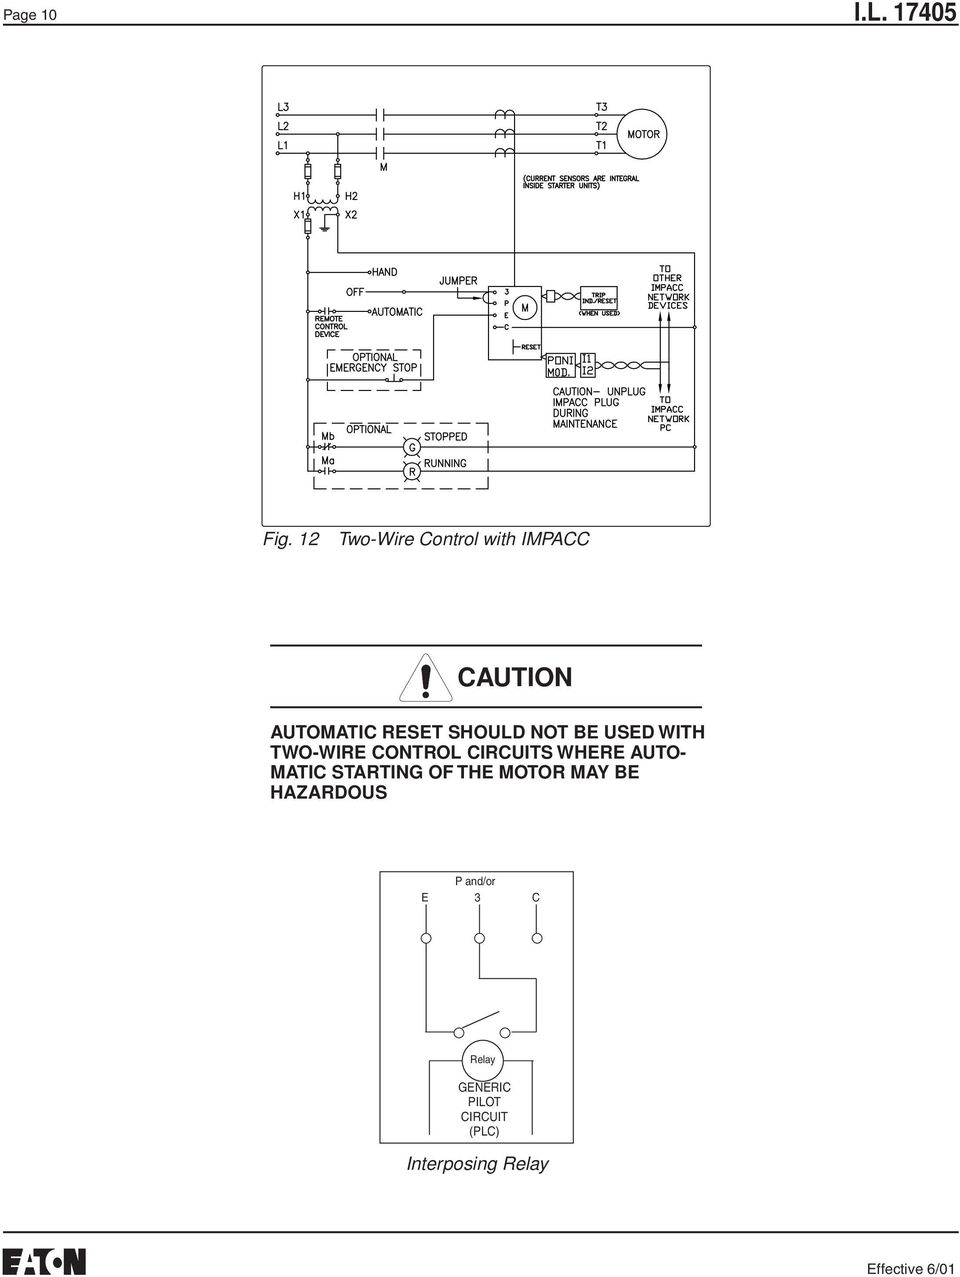 Instructions For Class W200 W201 Sizes 5 And 6 Three Phase Non 10 Hp Motor Starter Typical Wiring Diagram Not Be Used With Two Wire Control Circuits Where Auto Matic